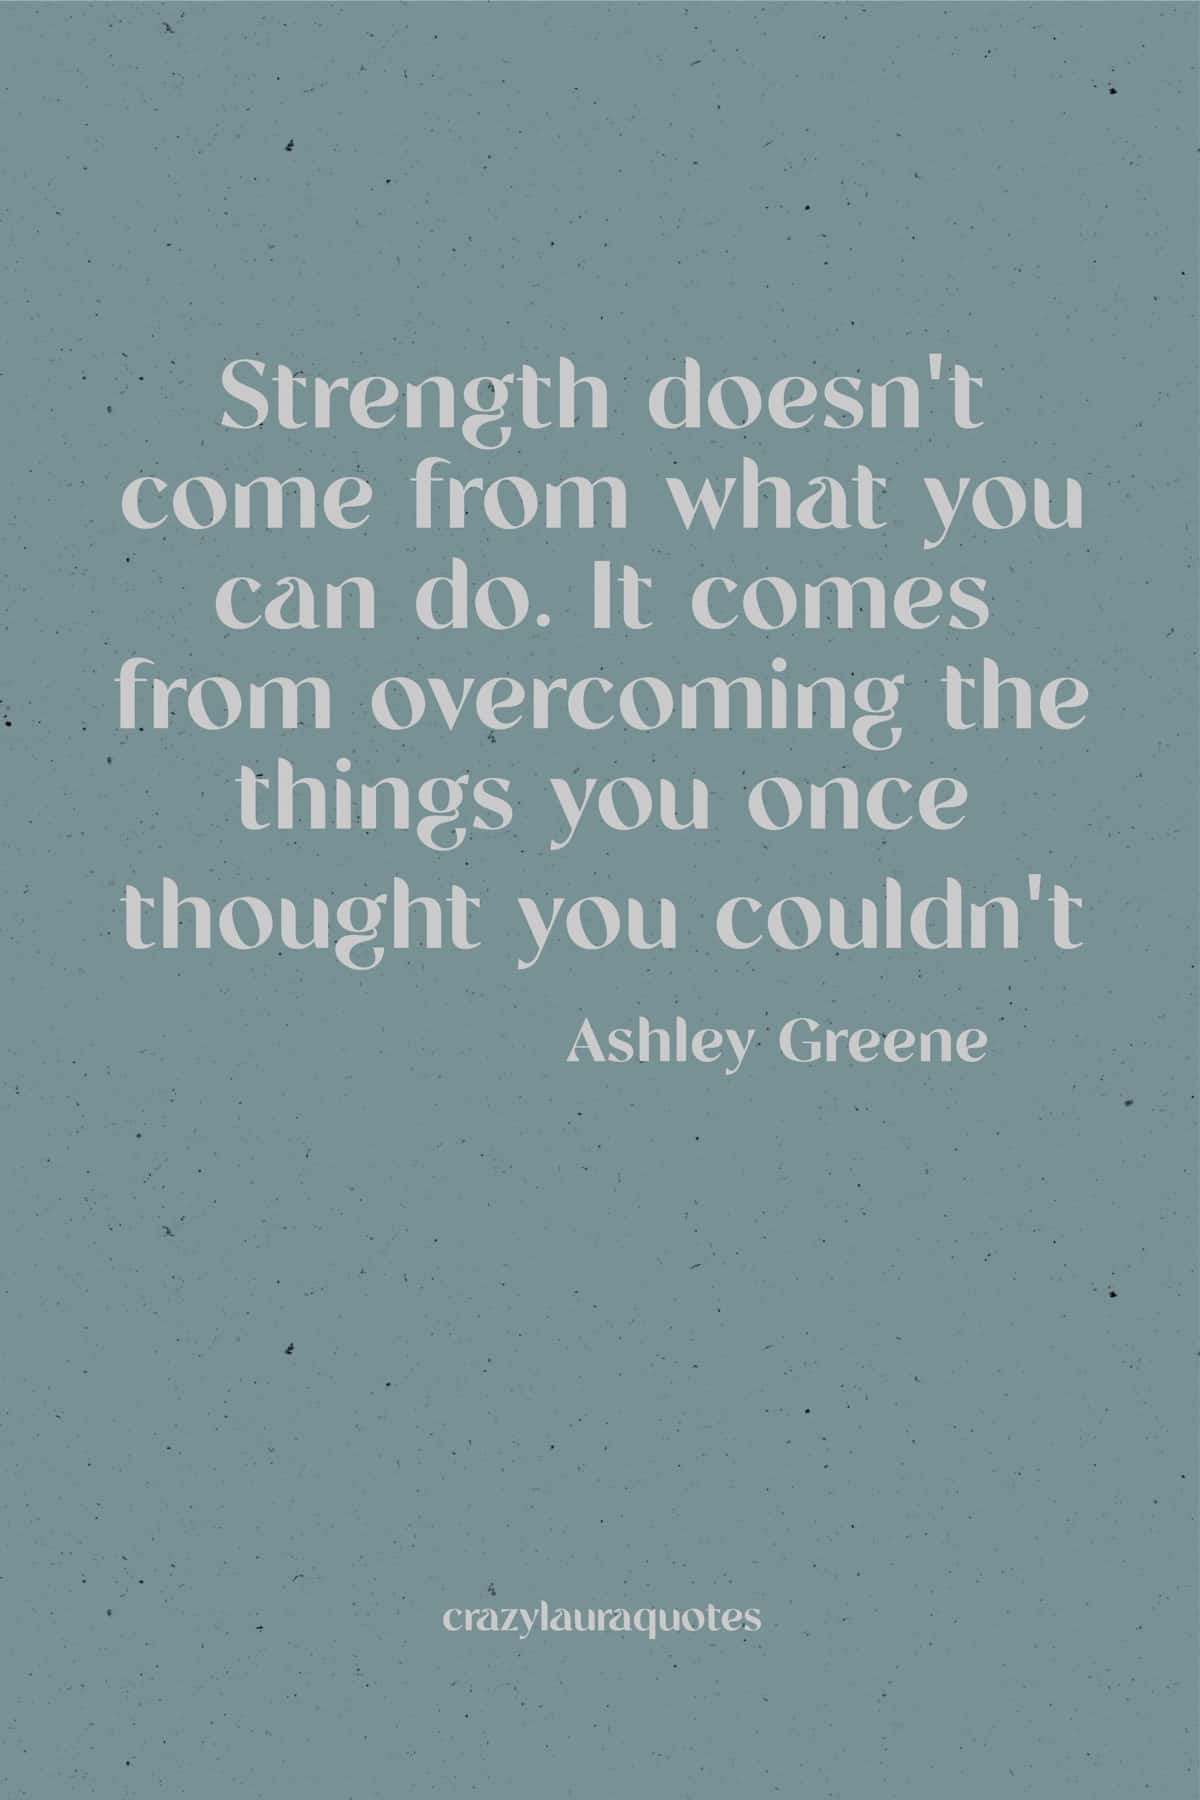 monday inspirational quote about strength